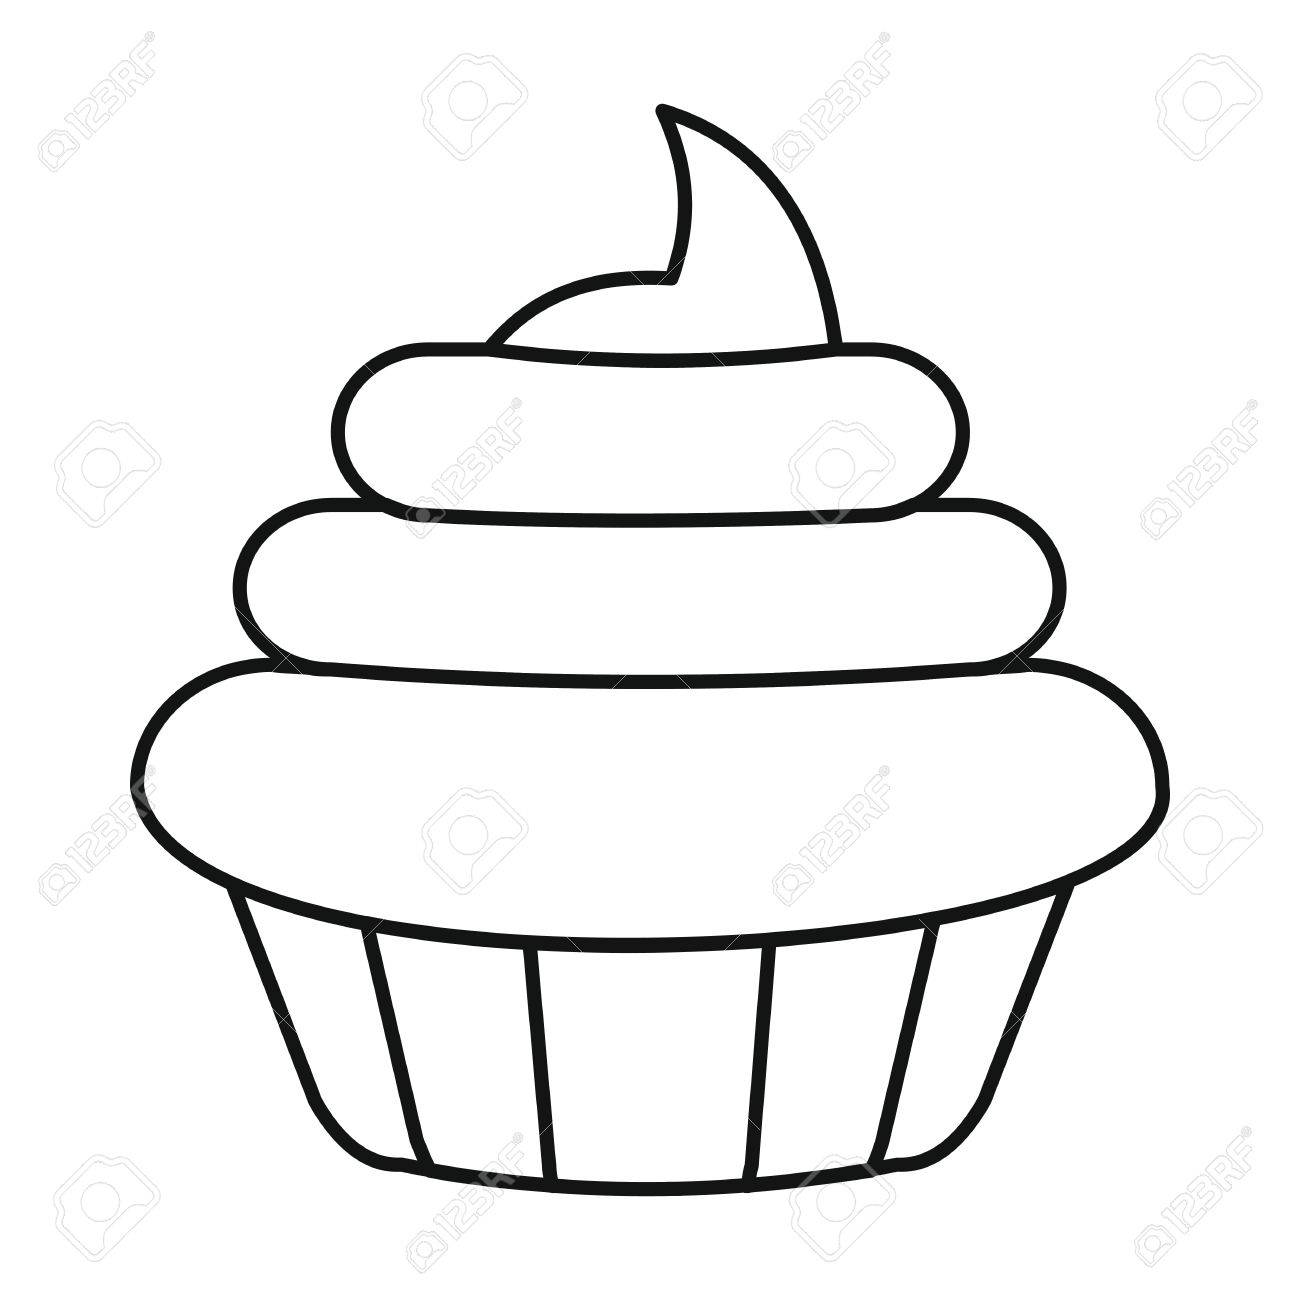 Cake Icon In Outline Style Vector Ilration For Design And Web Isolated On White Background